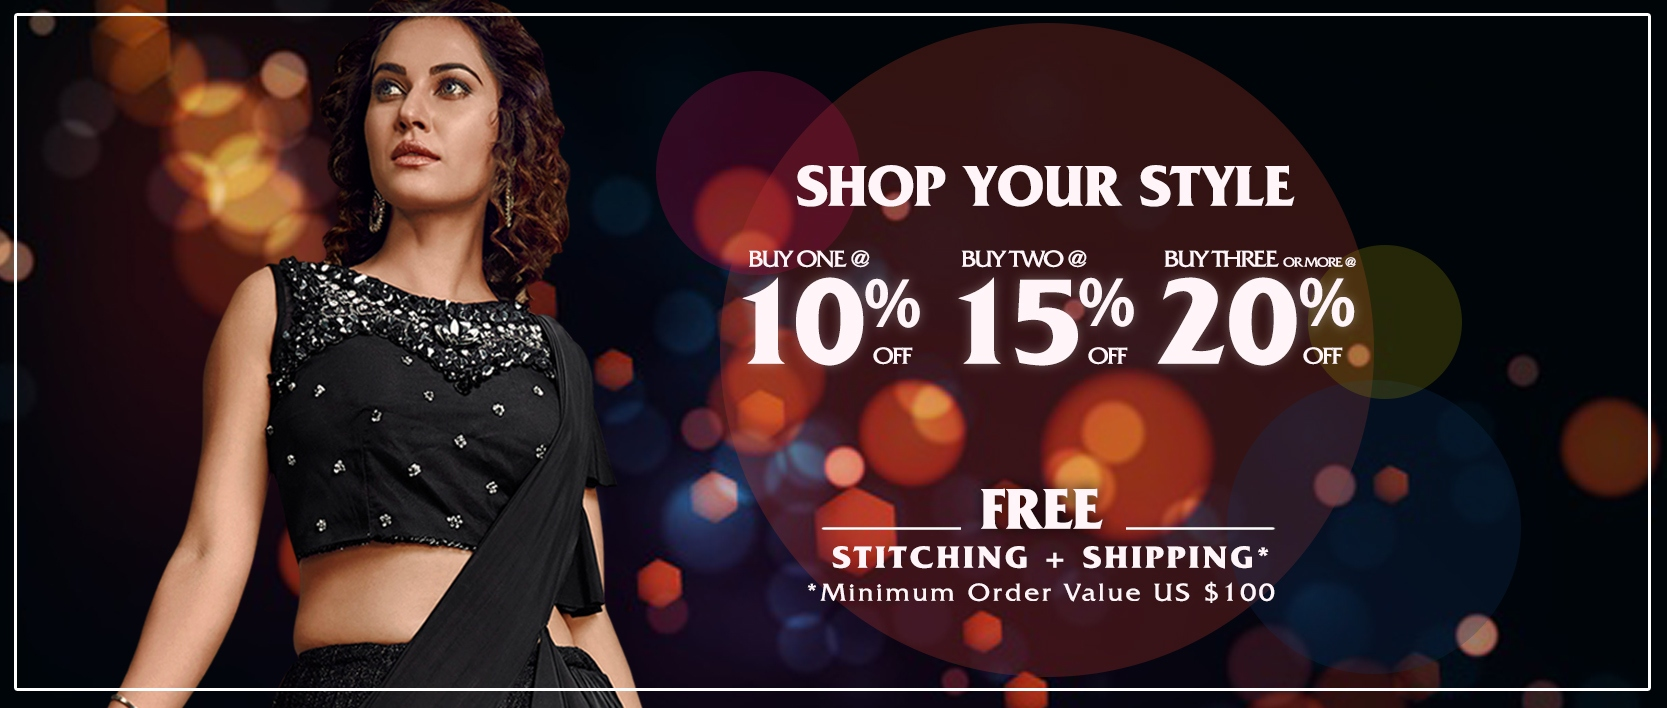 Buy > FREE SHIPPING and FREE STITCHING